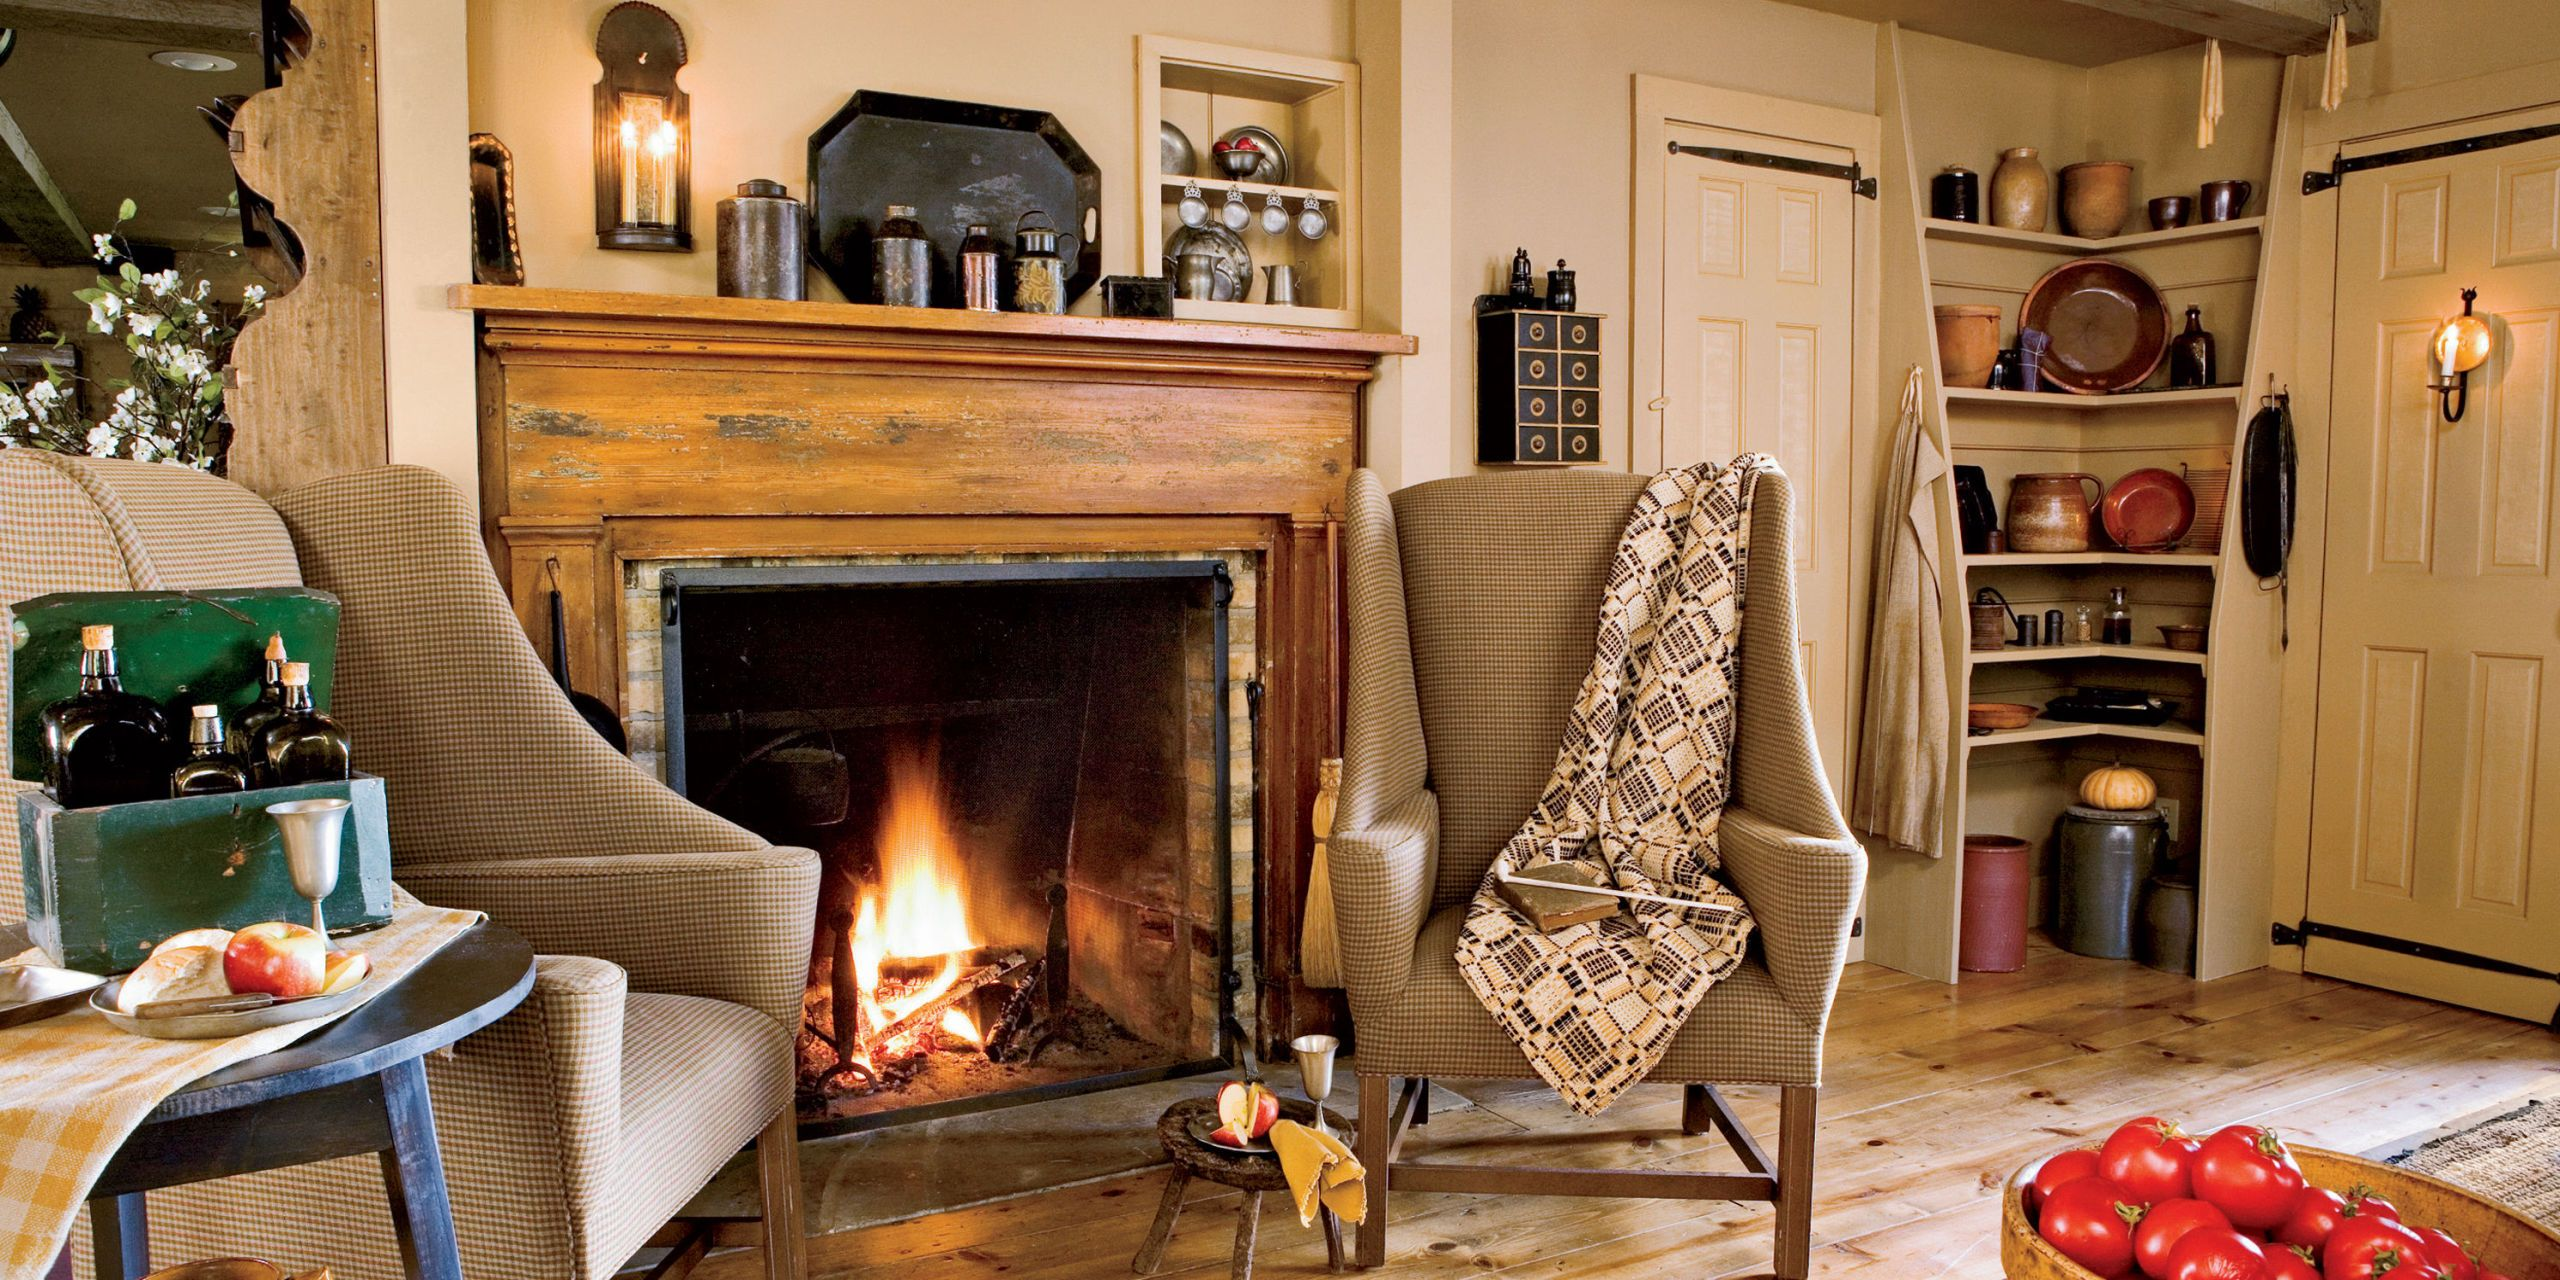 Stone slate wood and more: Get inspired to re-do your living room with our favorite fireplace designs and mantel ideas. & 40+ Fireplace Design Ideas - Fireplace Mantel Decorating Ideas